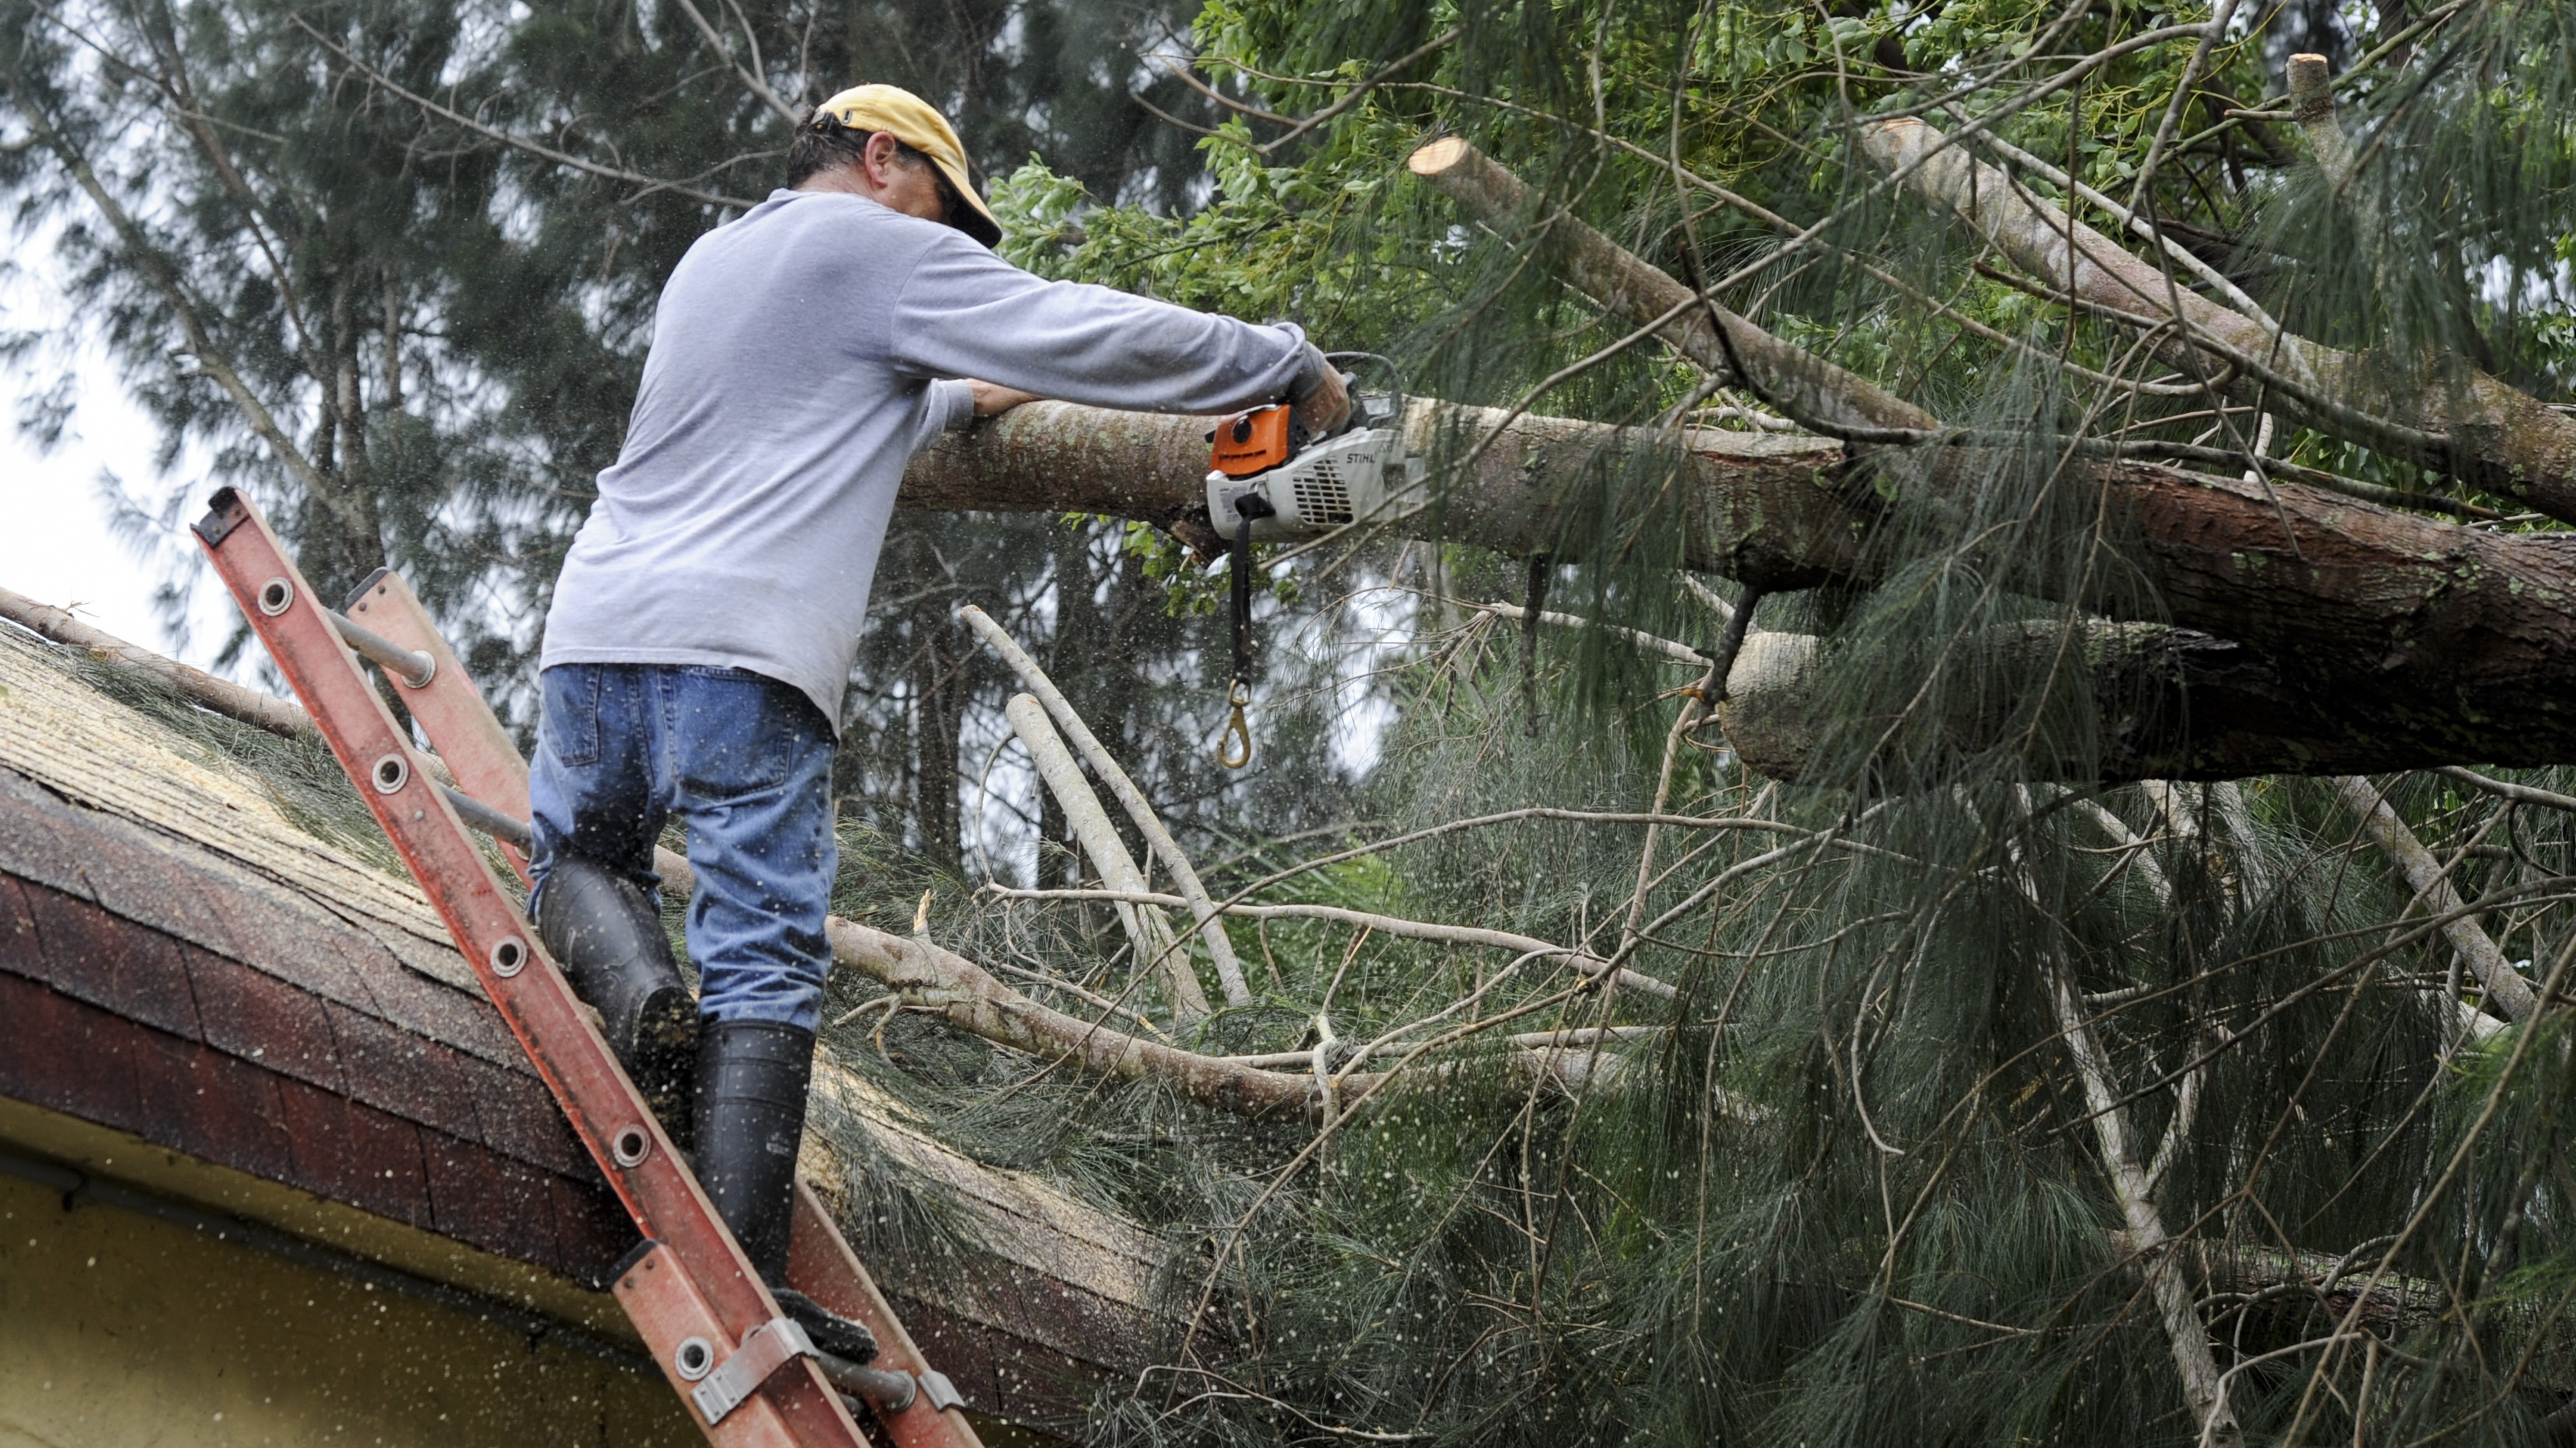 Hurricane 2019: If you get through the storm, don't injure